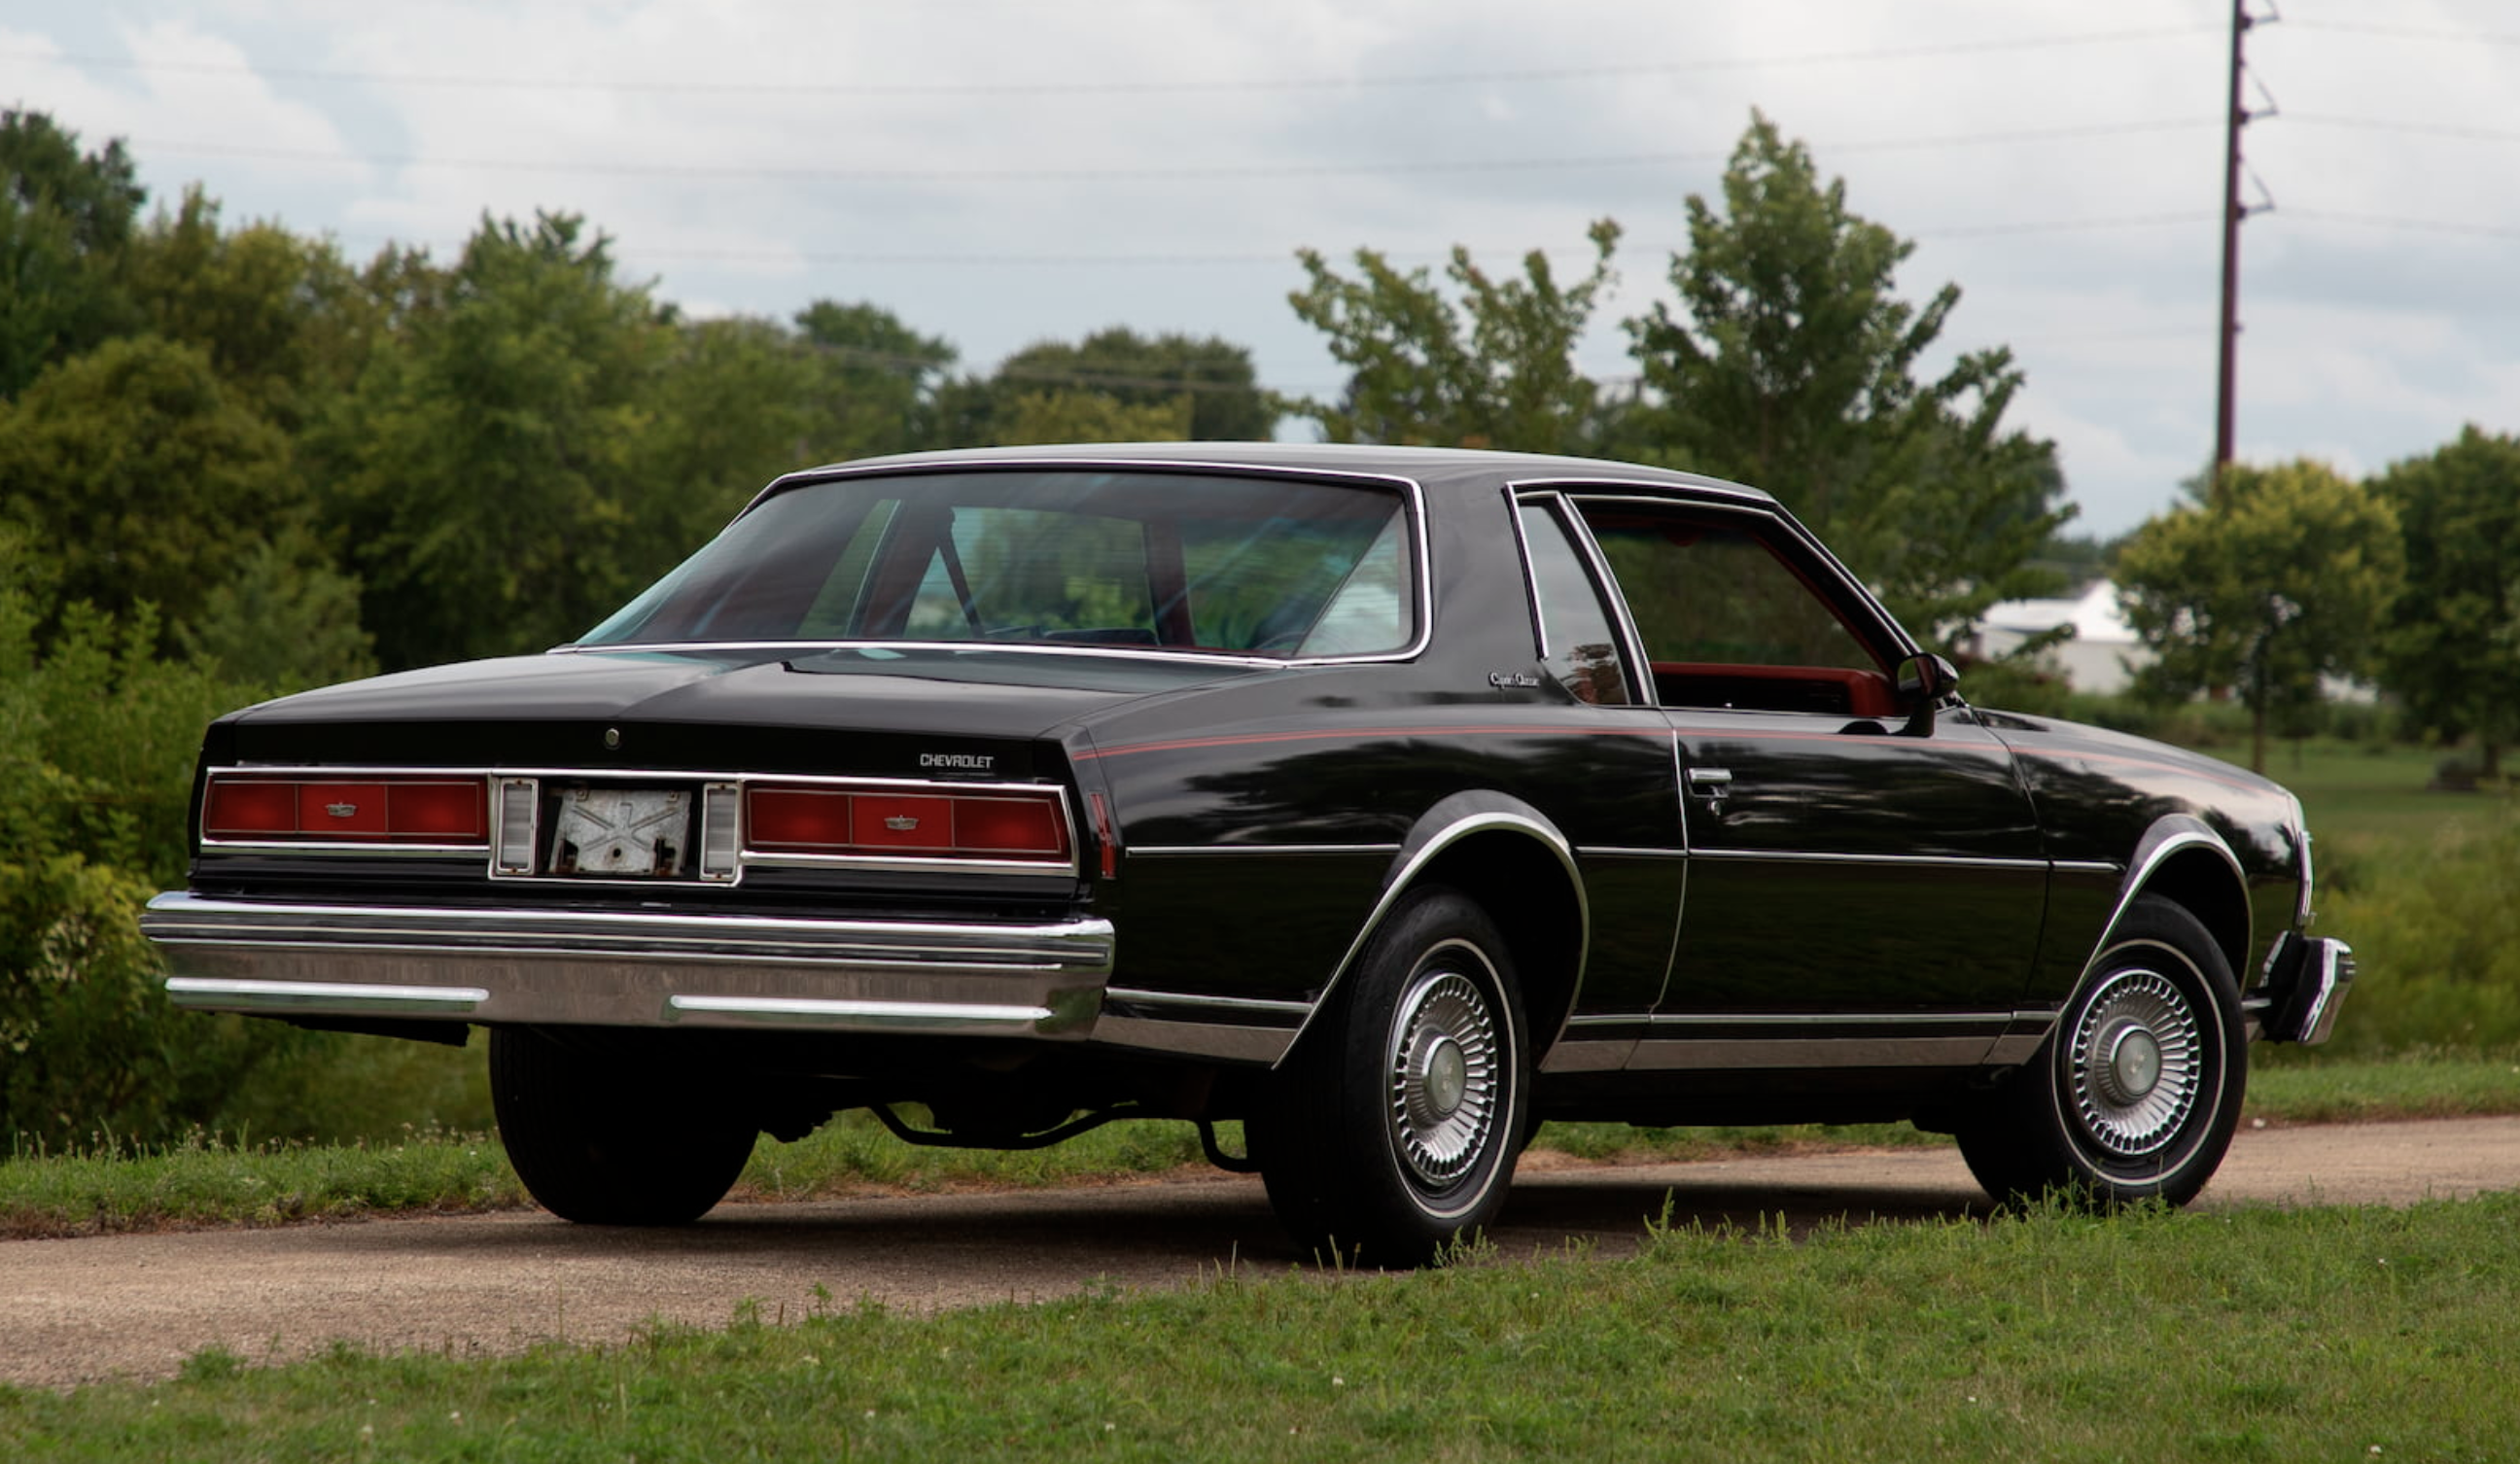 1977 Caprice coupe front three quarter